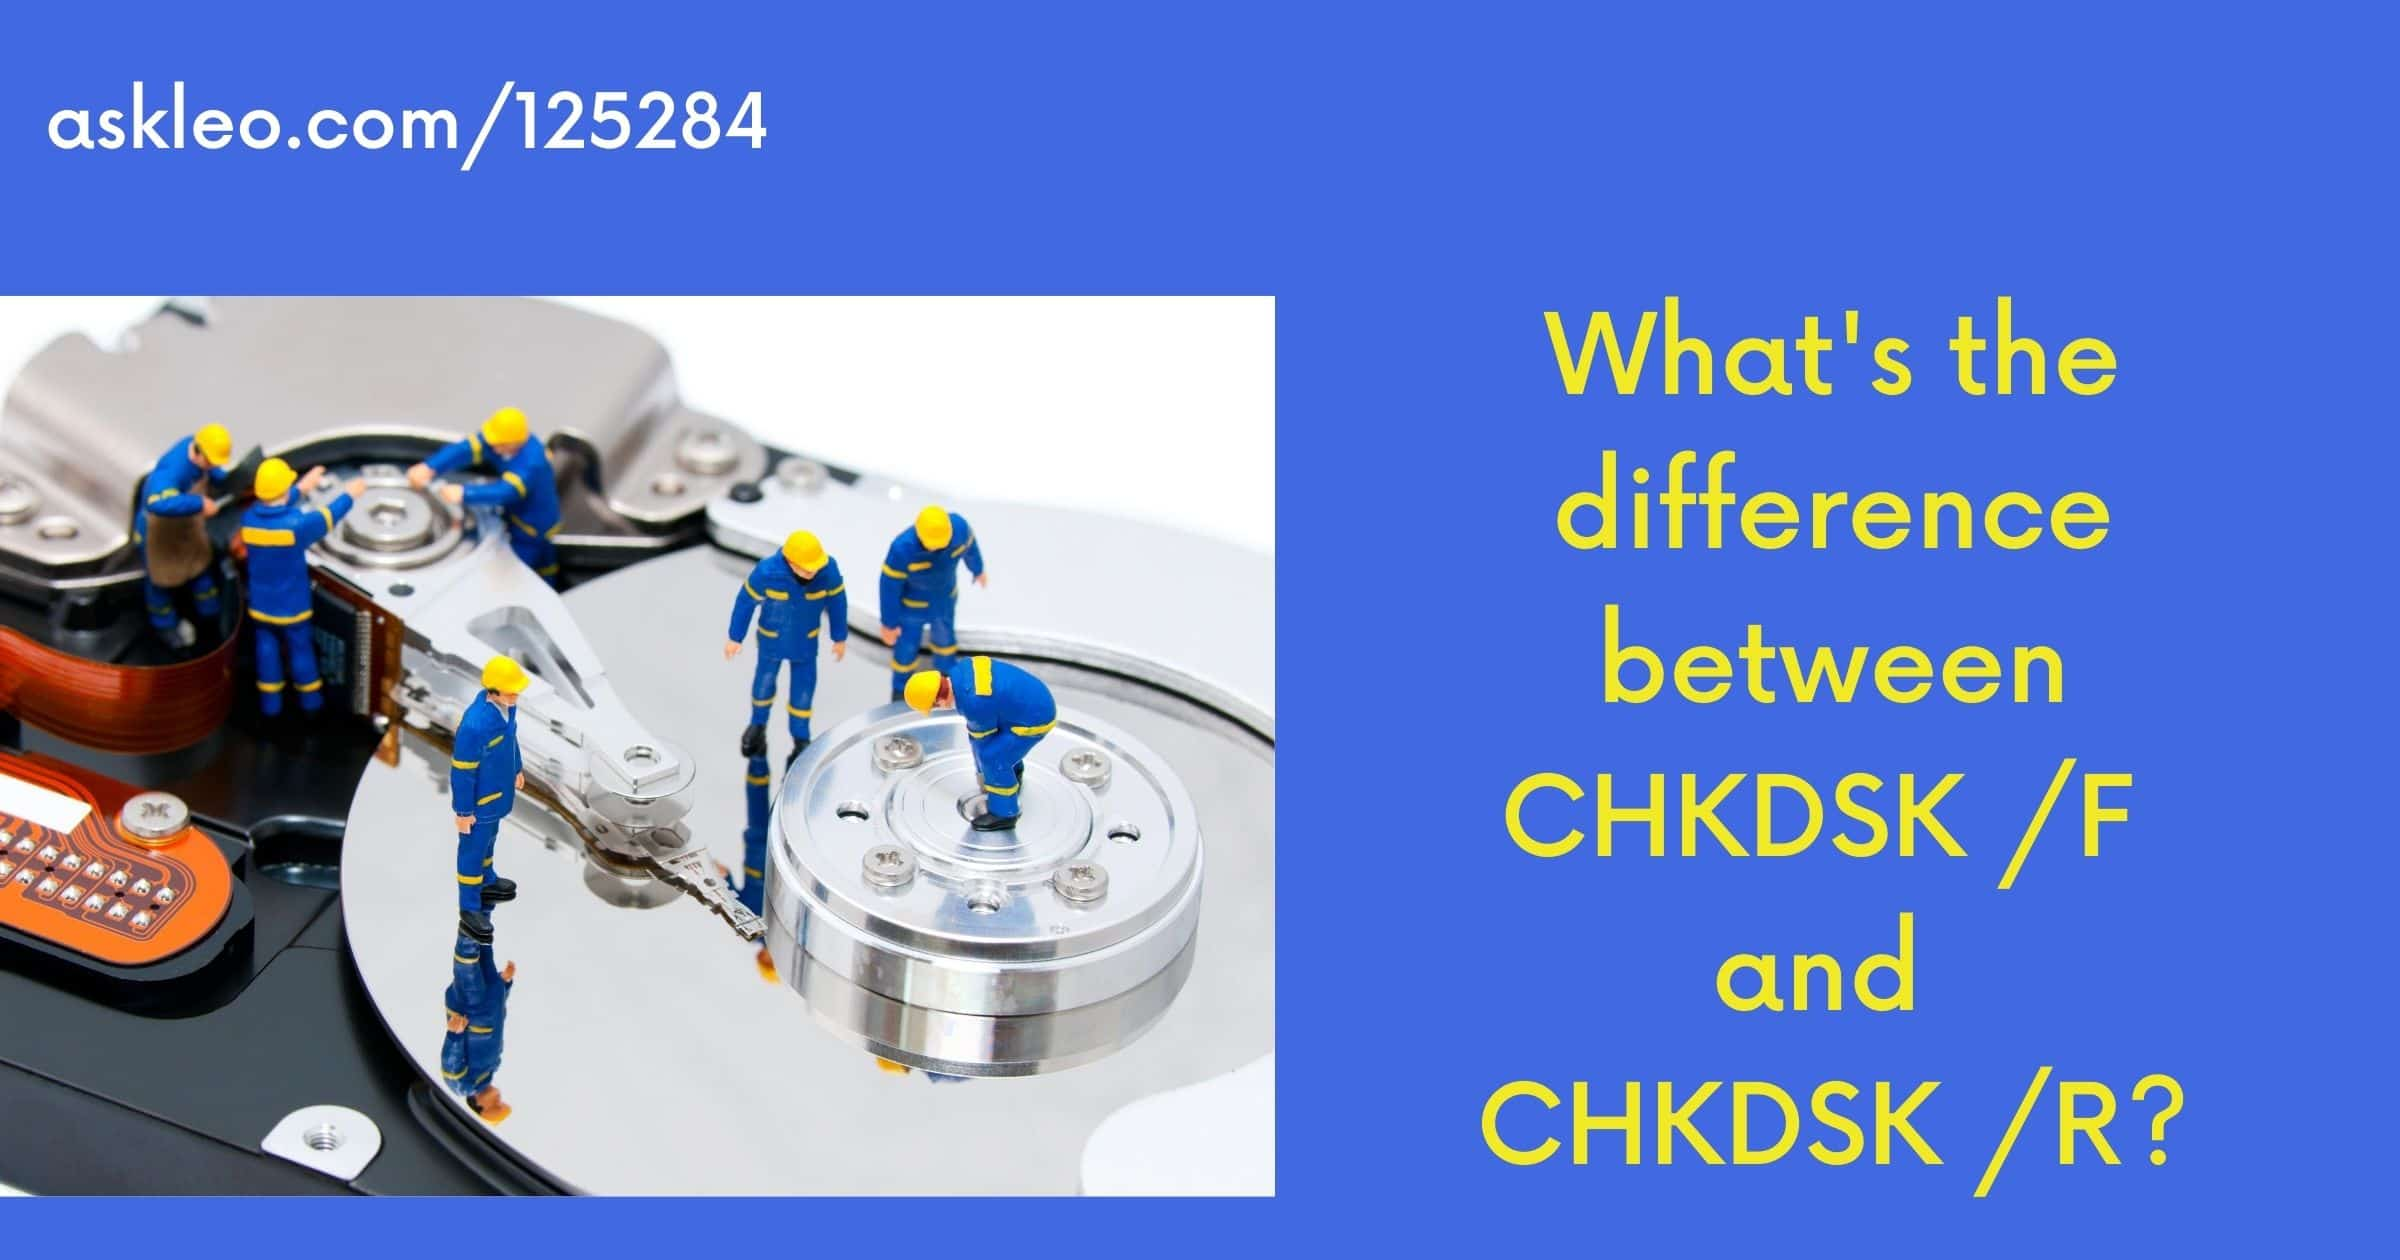 What's the Difference Between CHKDSK /F and CHKDSK /R?